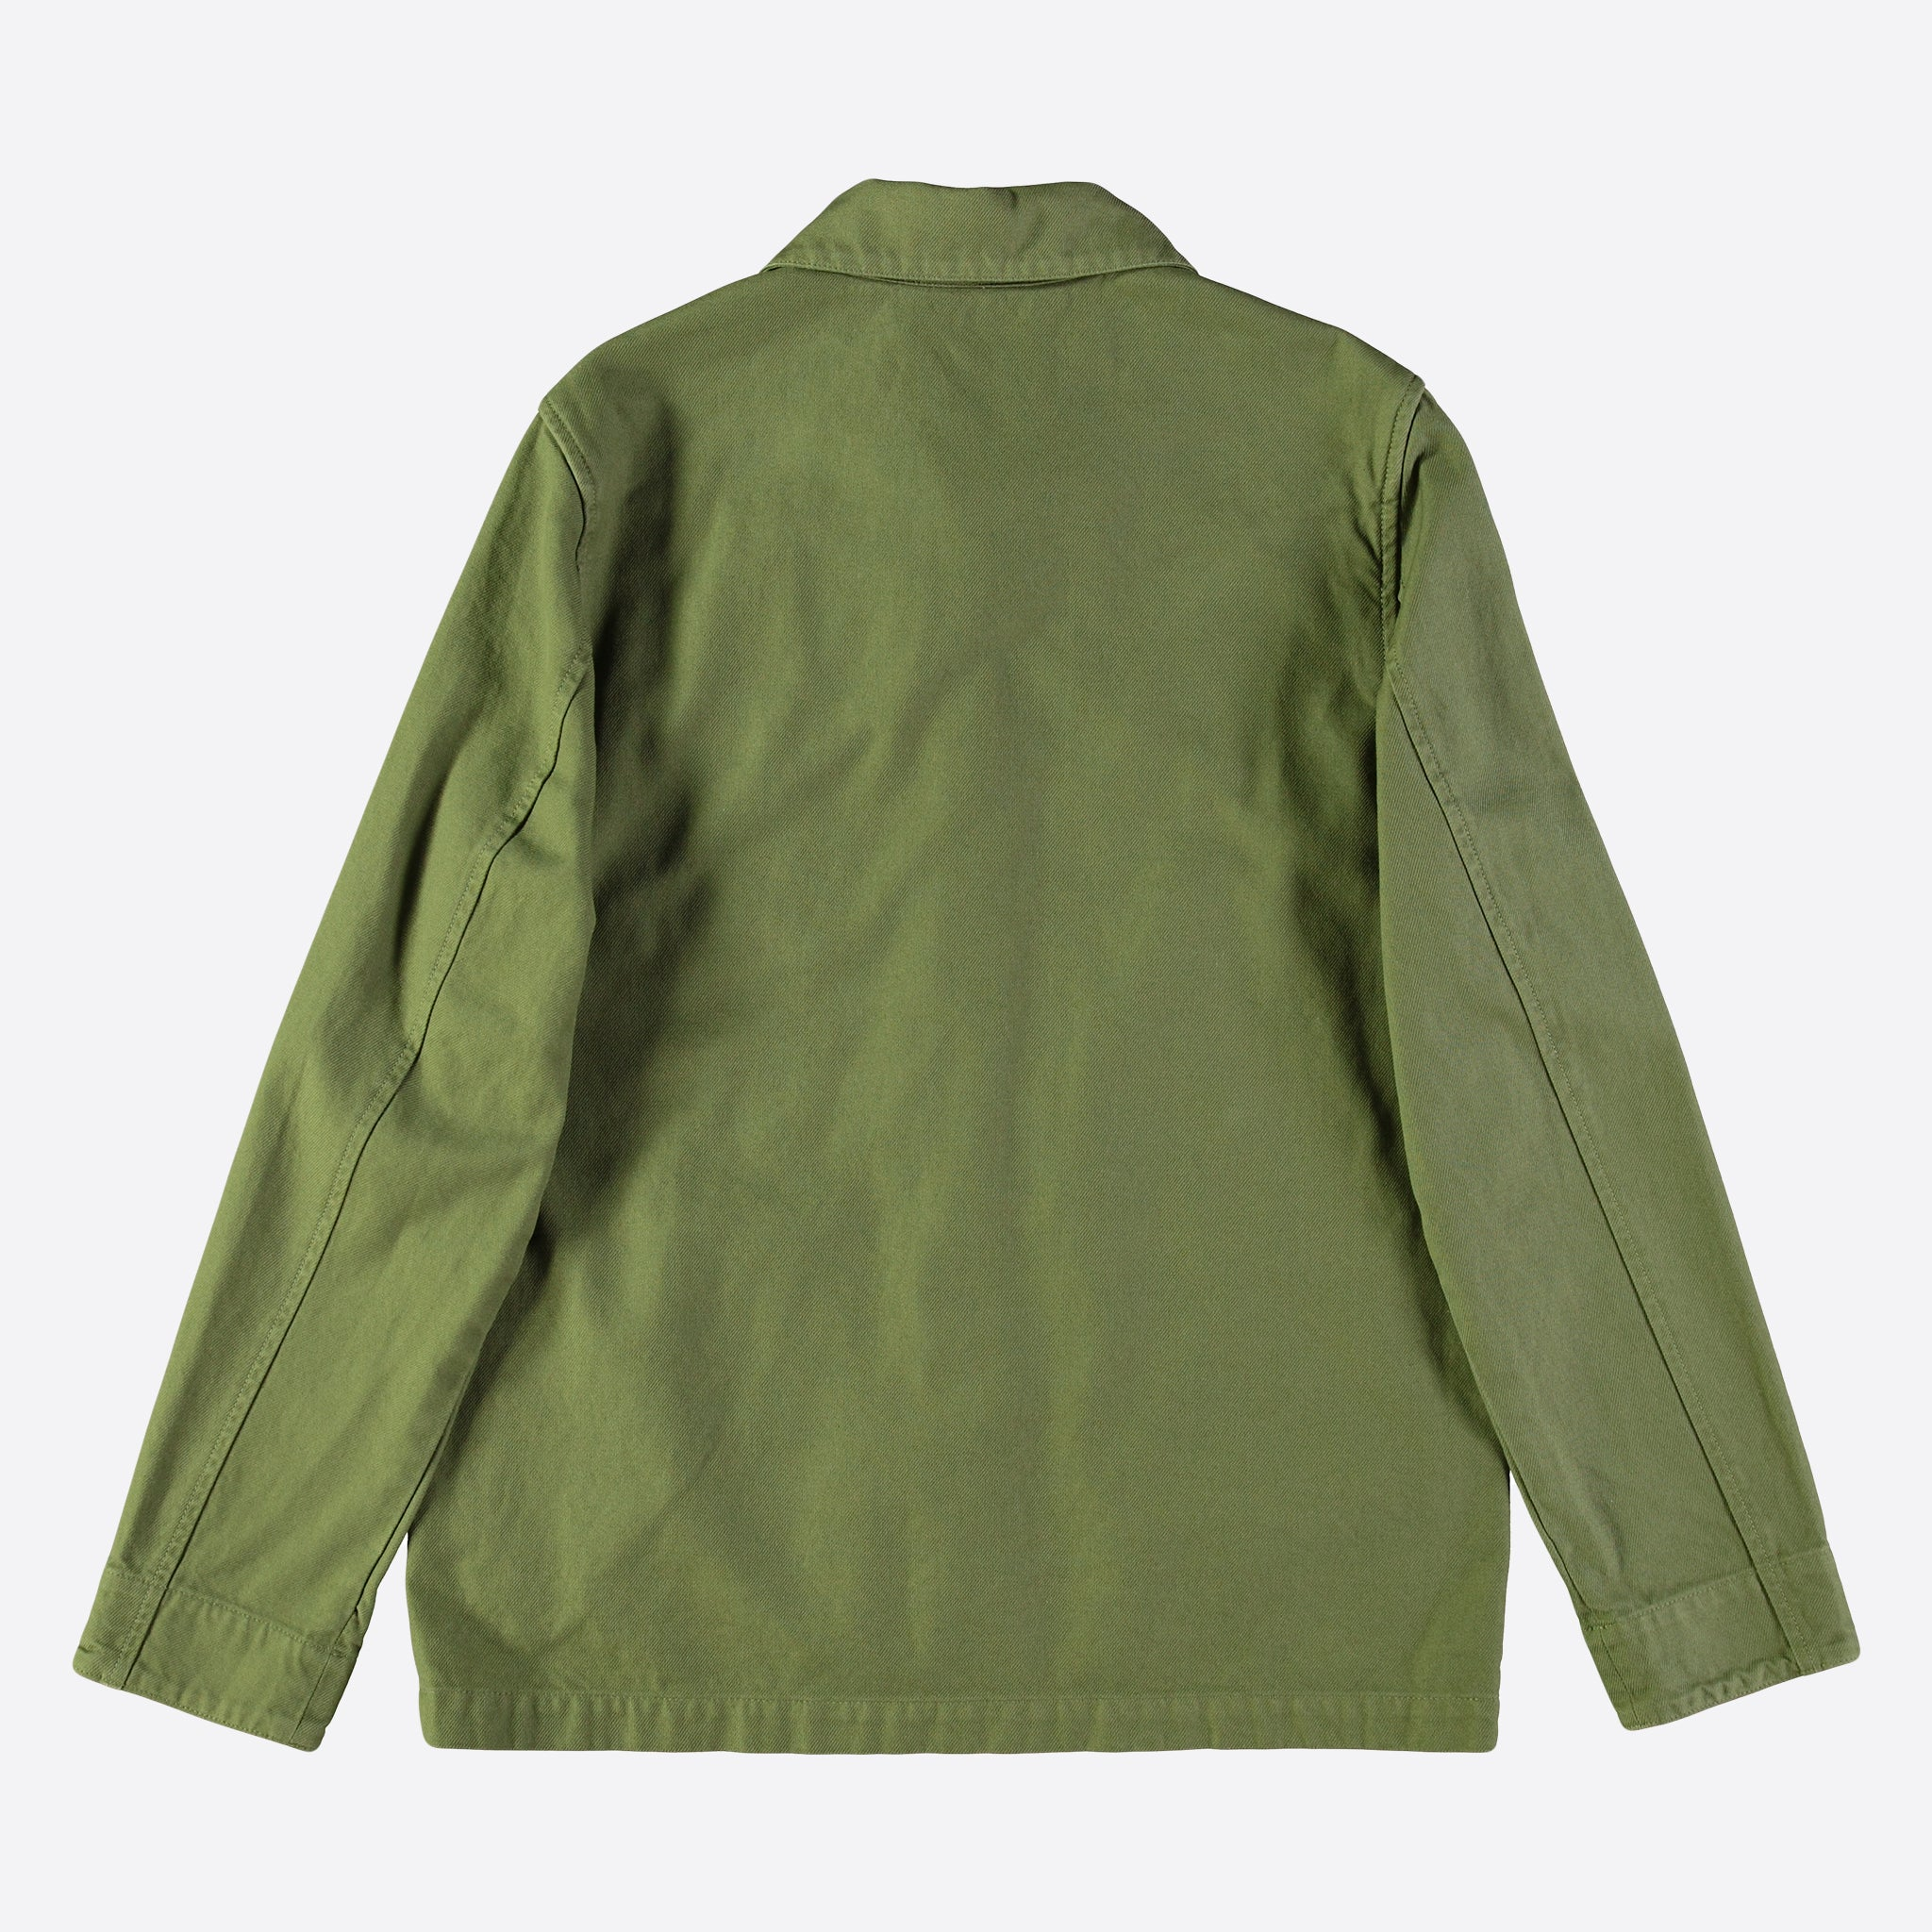 Eat Dust Combat Blazer in Cotton Twill Olive